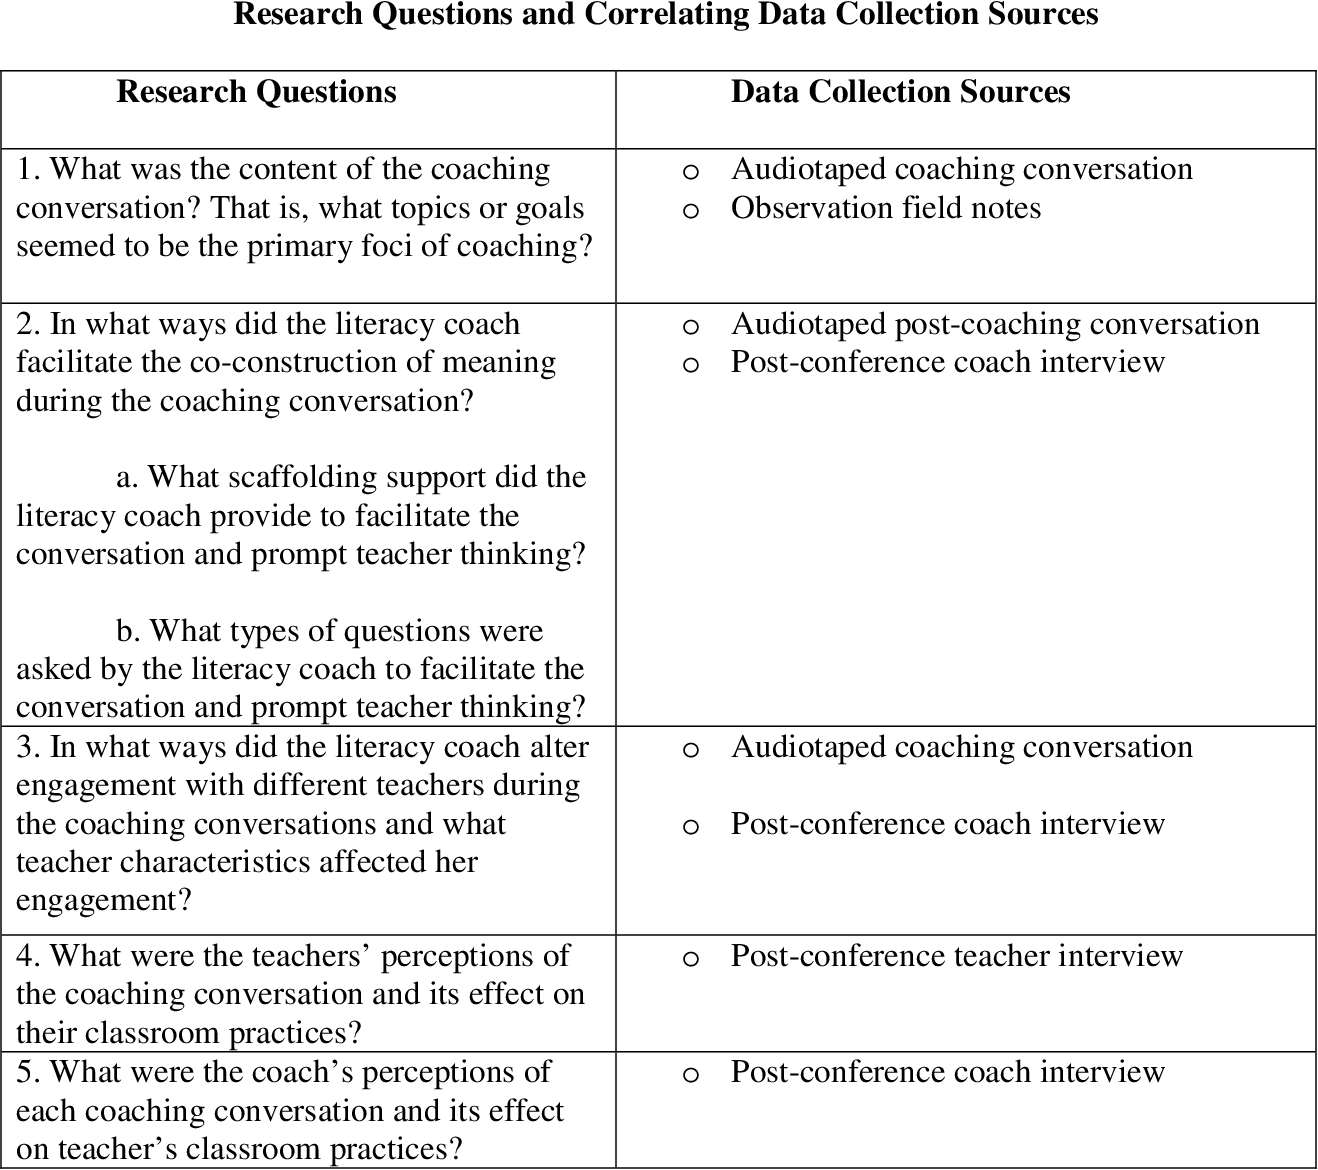 COACHING CONVERSATIONS THE NATURE OF TALK BETWEEN A LITERACY COACH